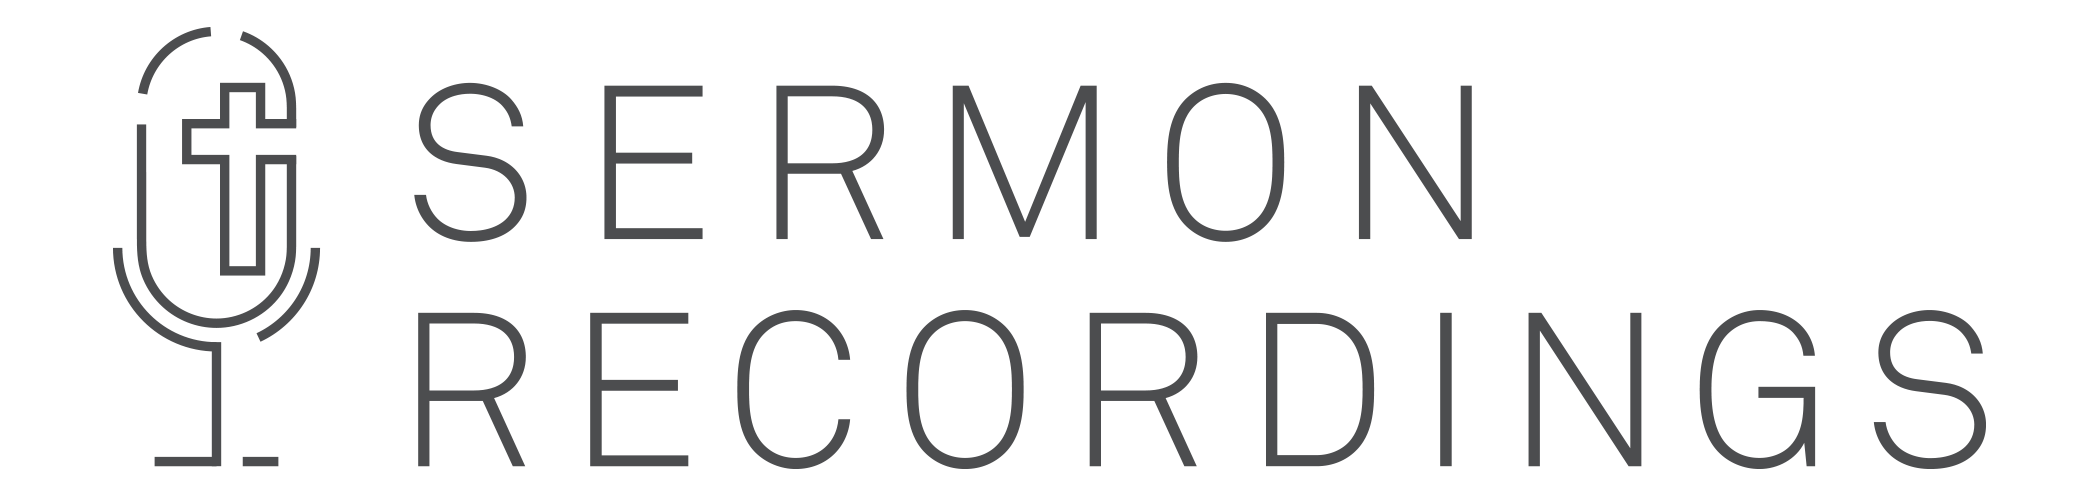 SermonRecordings